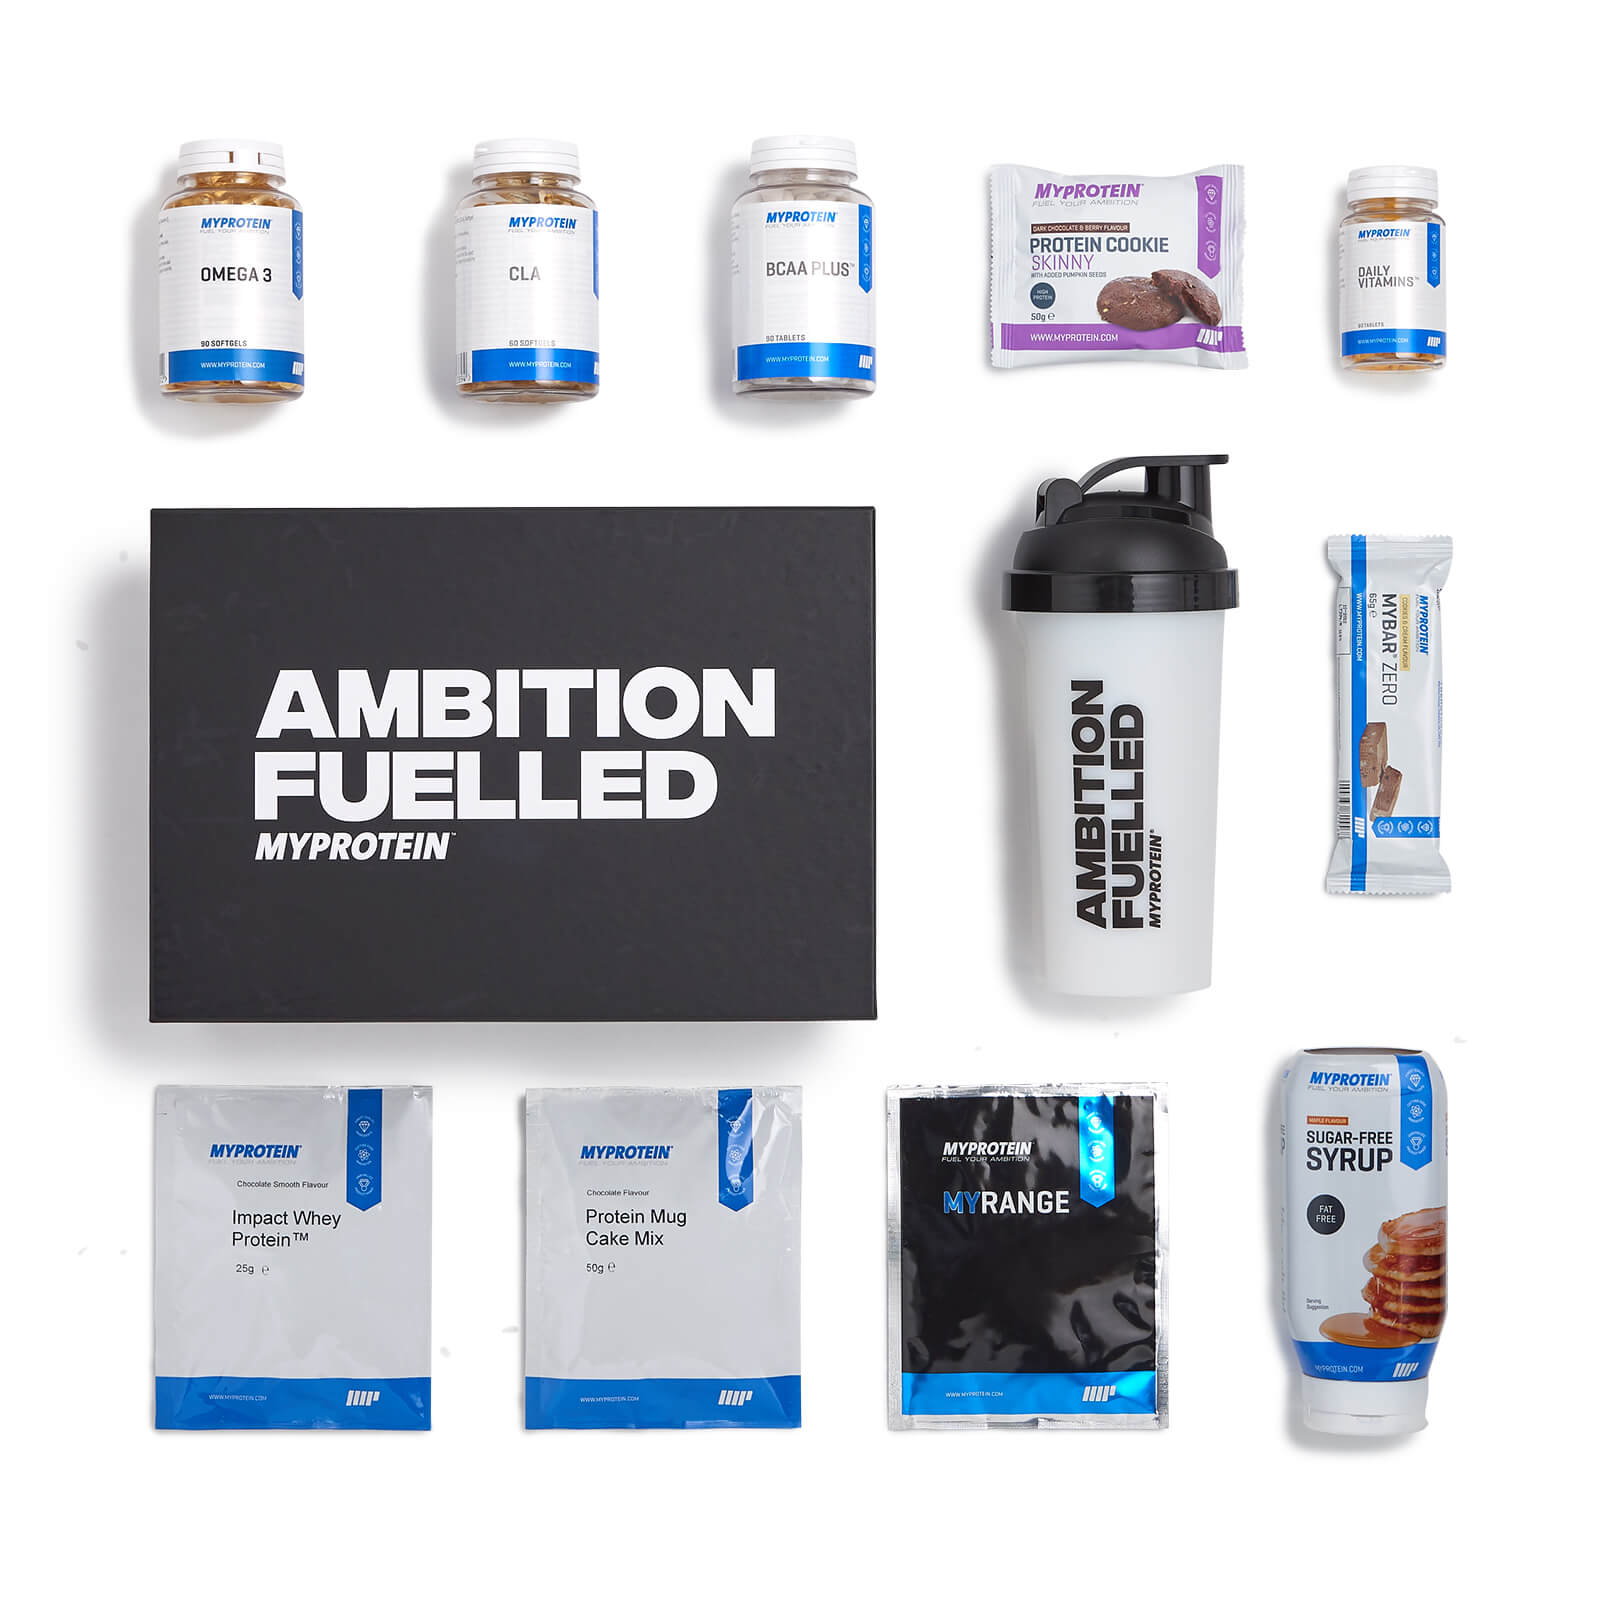 Ambition Fuelled Box